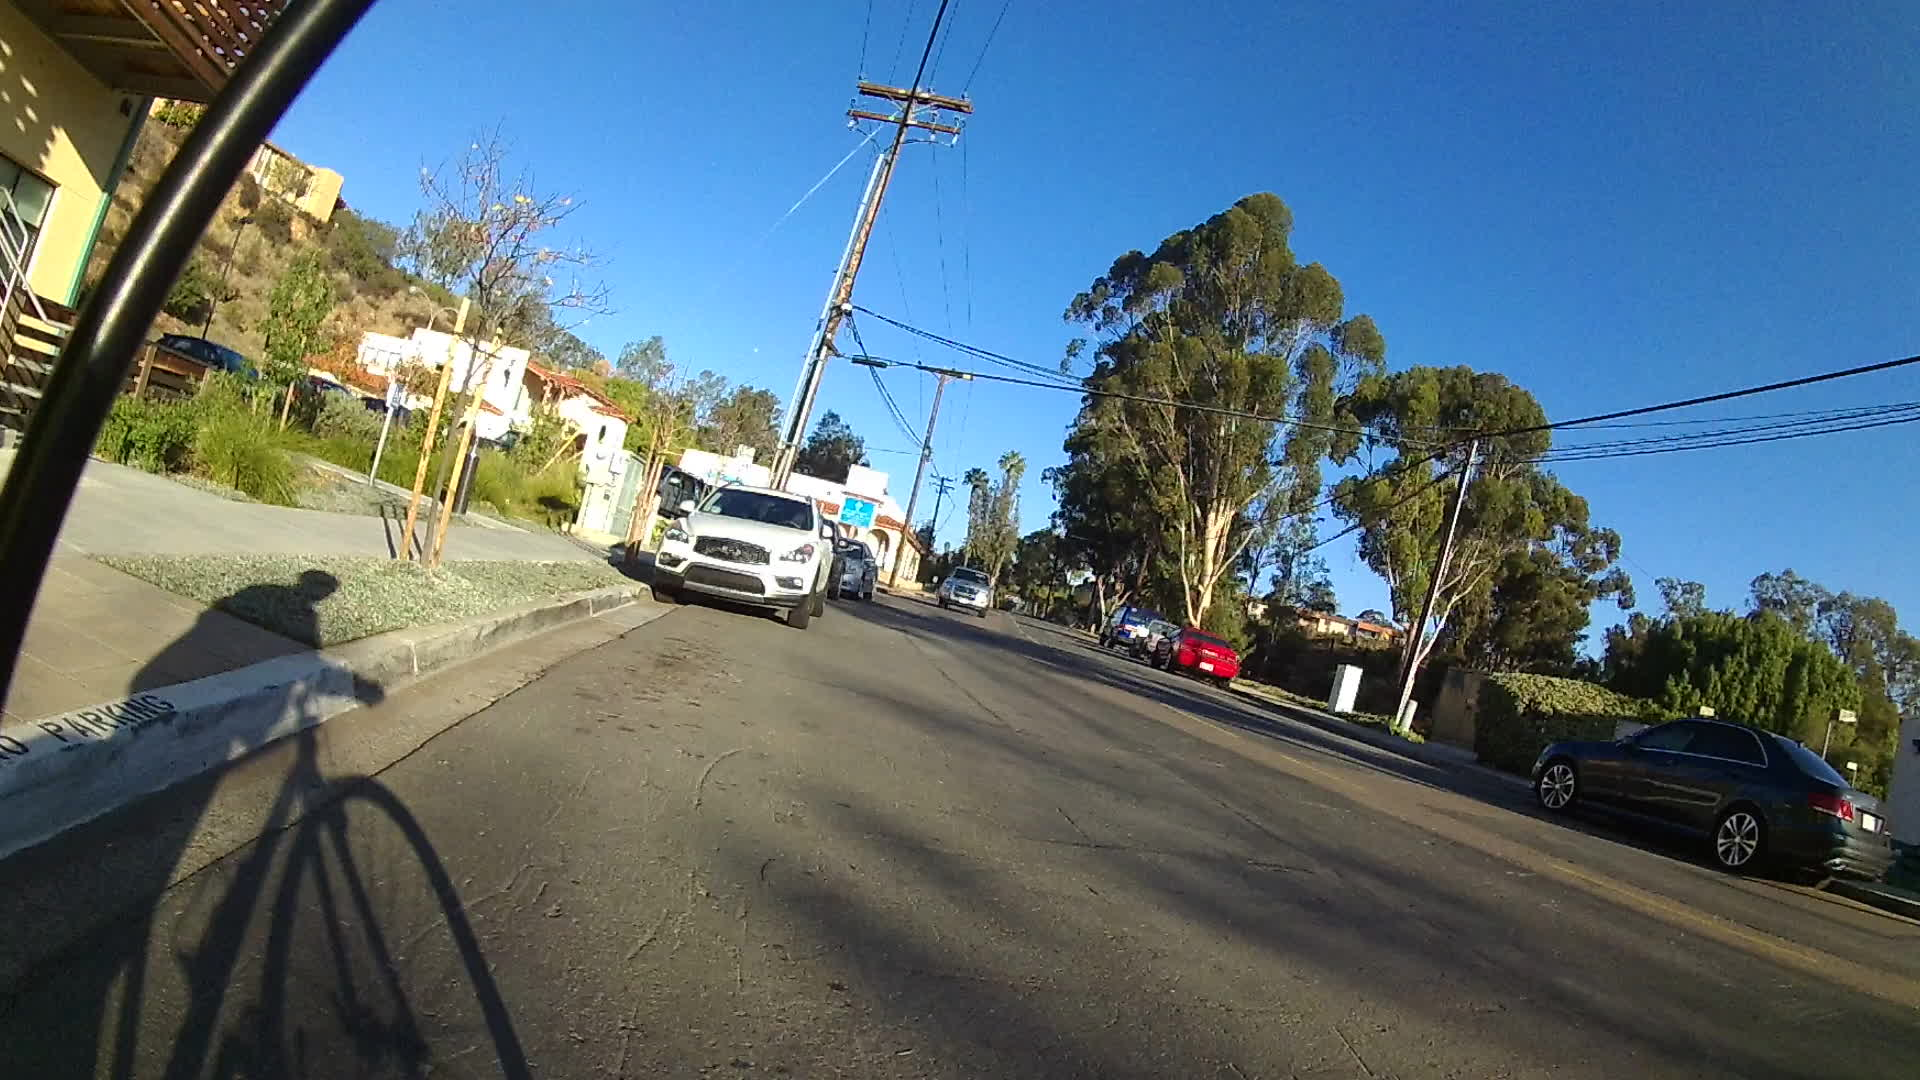 bicycle, bikecommuting, commute, Fast motion bike commute, San Diego. GIFs